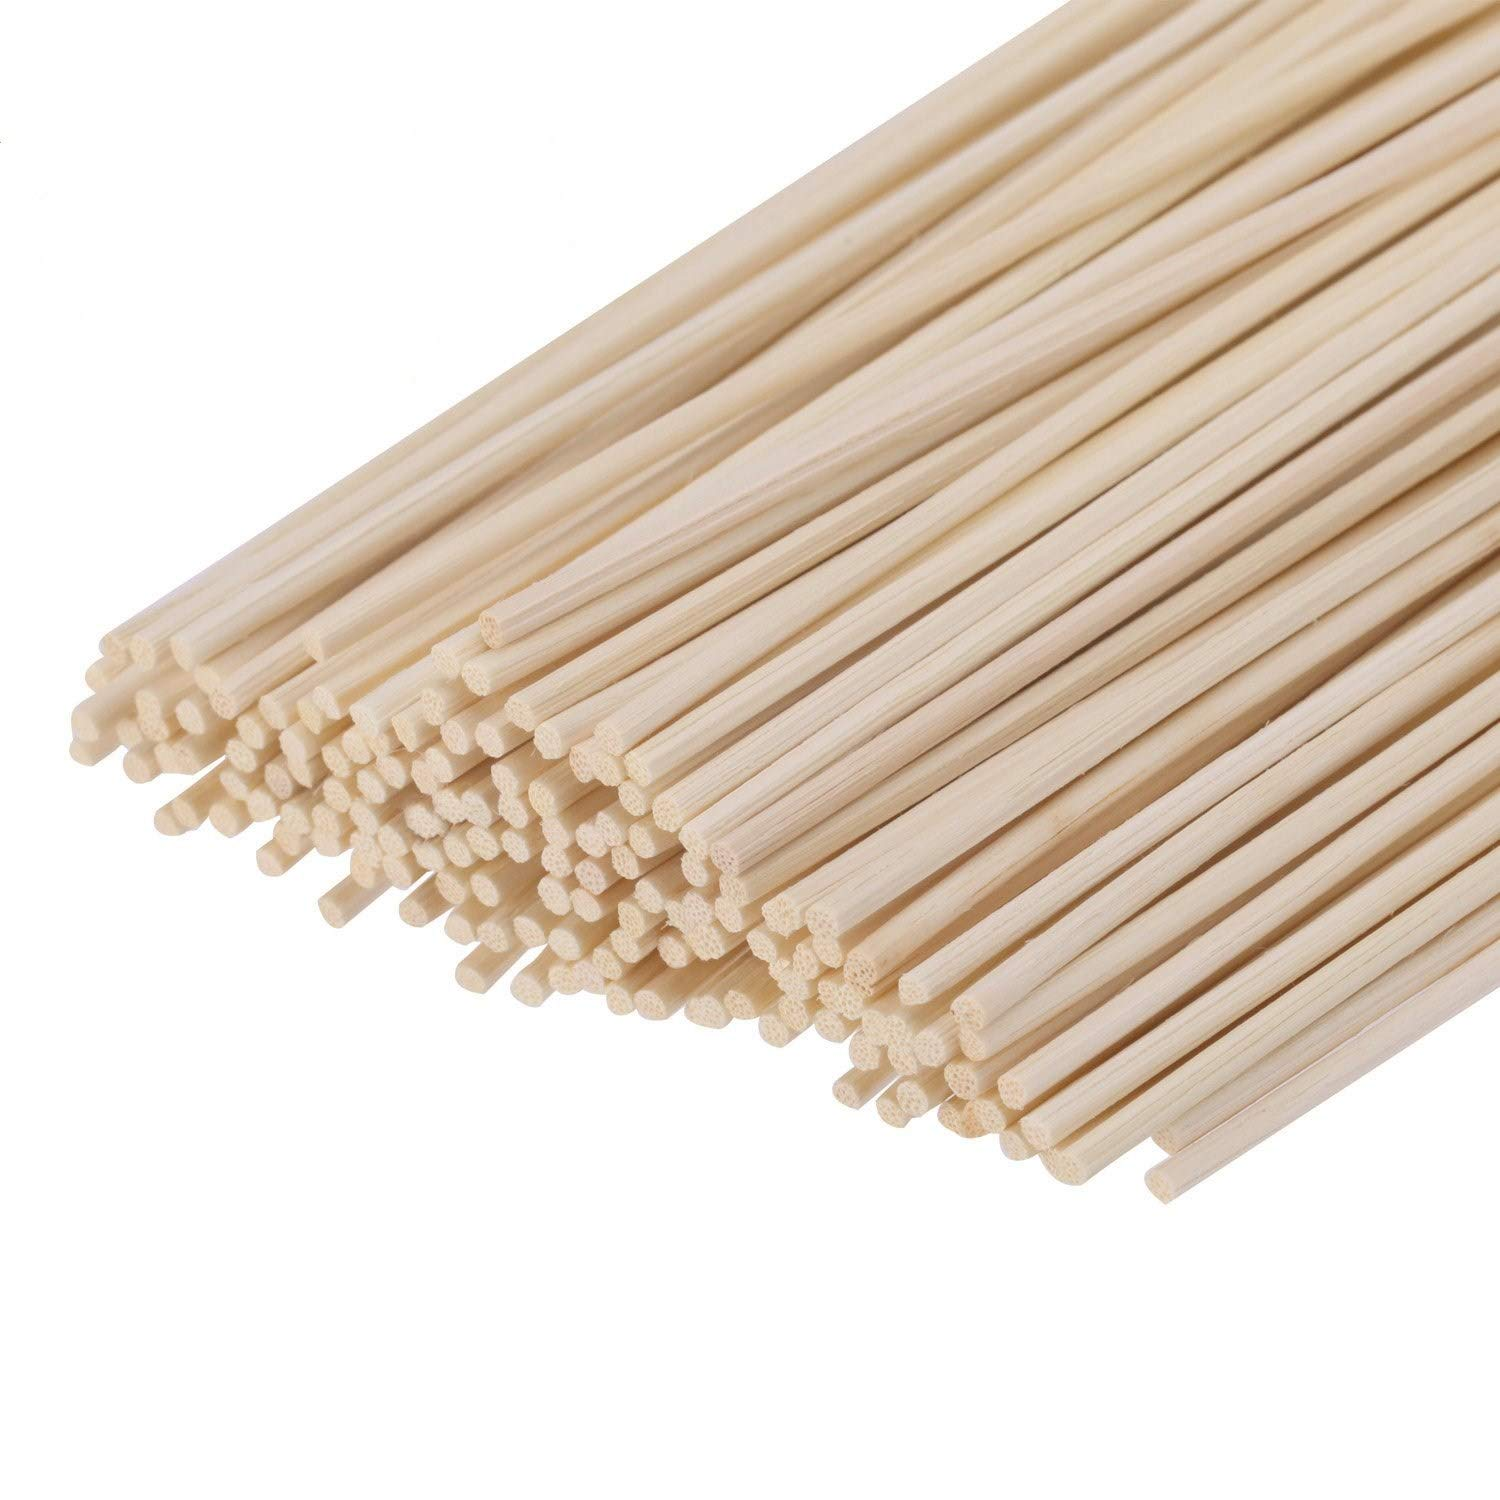 Set of 100 Reed Diffuser Sticks